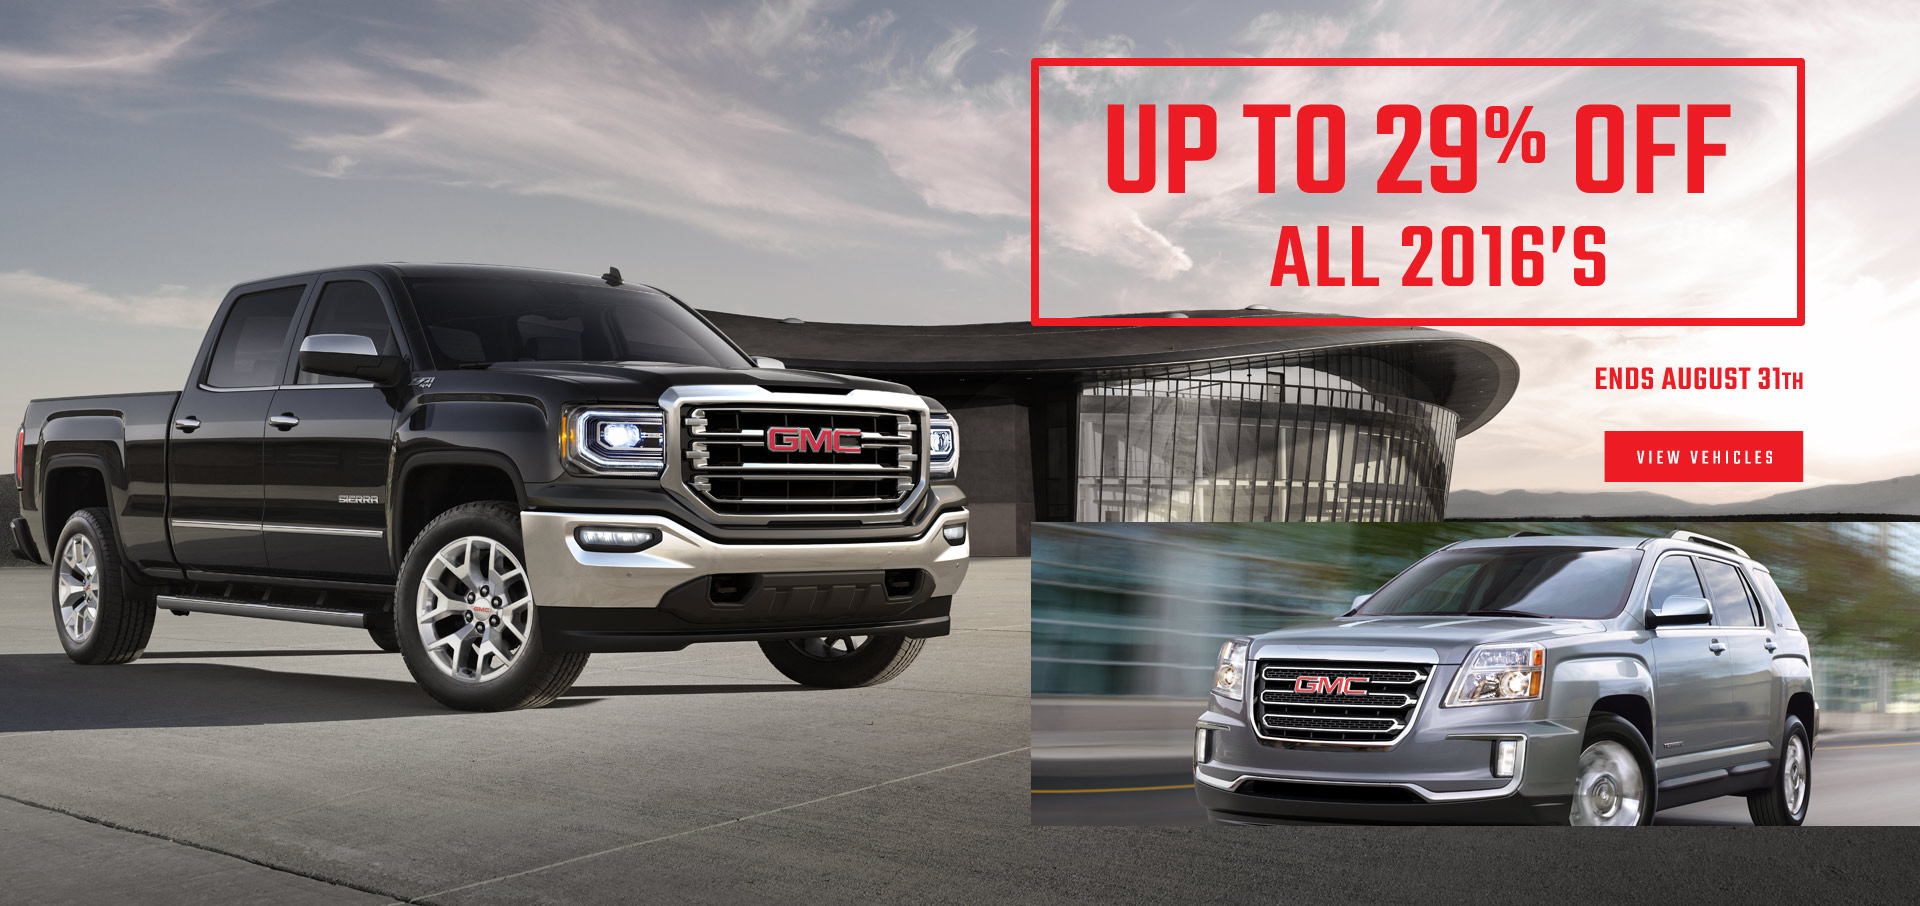 2016 GMC On Sale